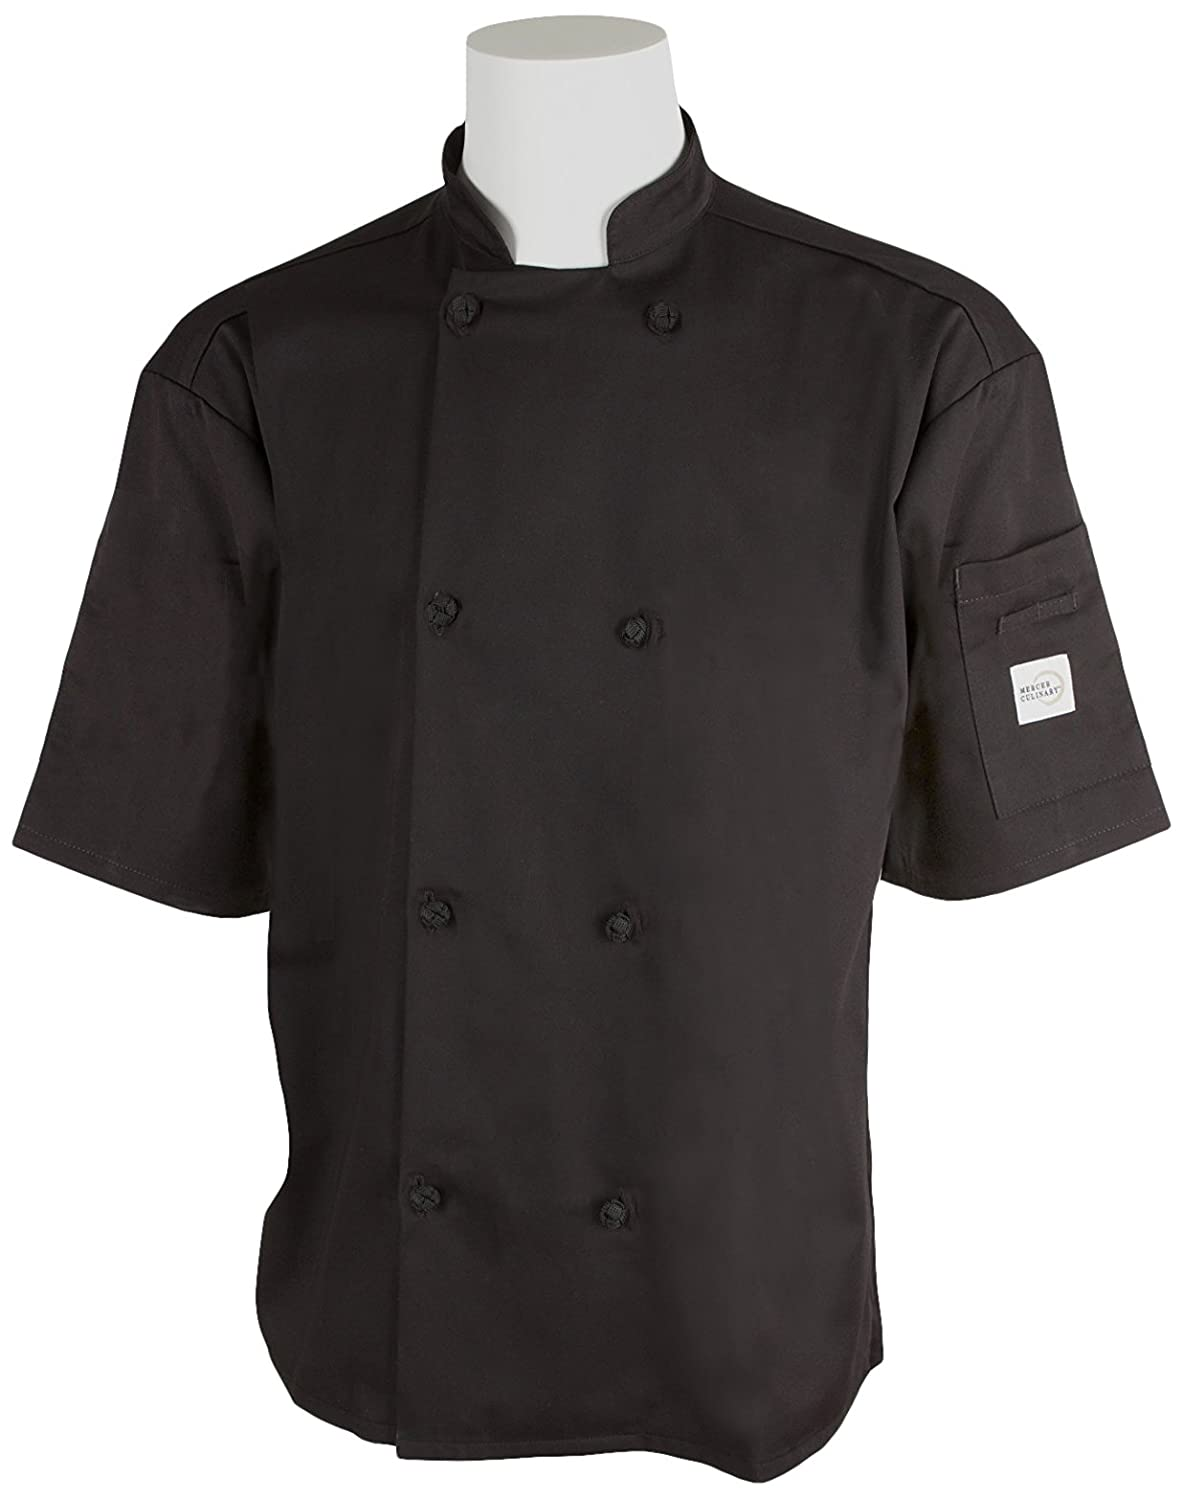 3X-Large Mercer Culinary M61022BK3X Genesis Mens Short Sleeve Chef Jacket with Cloth Knot Buttons Black